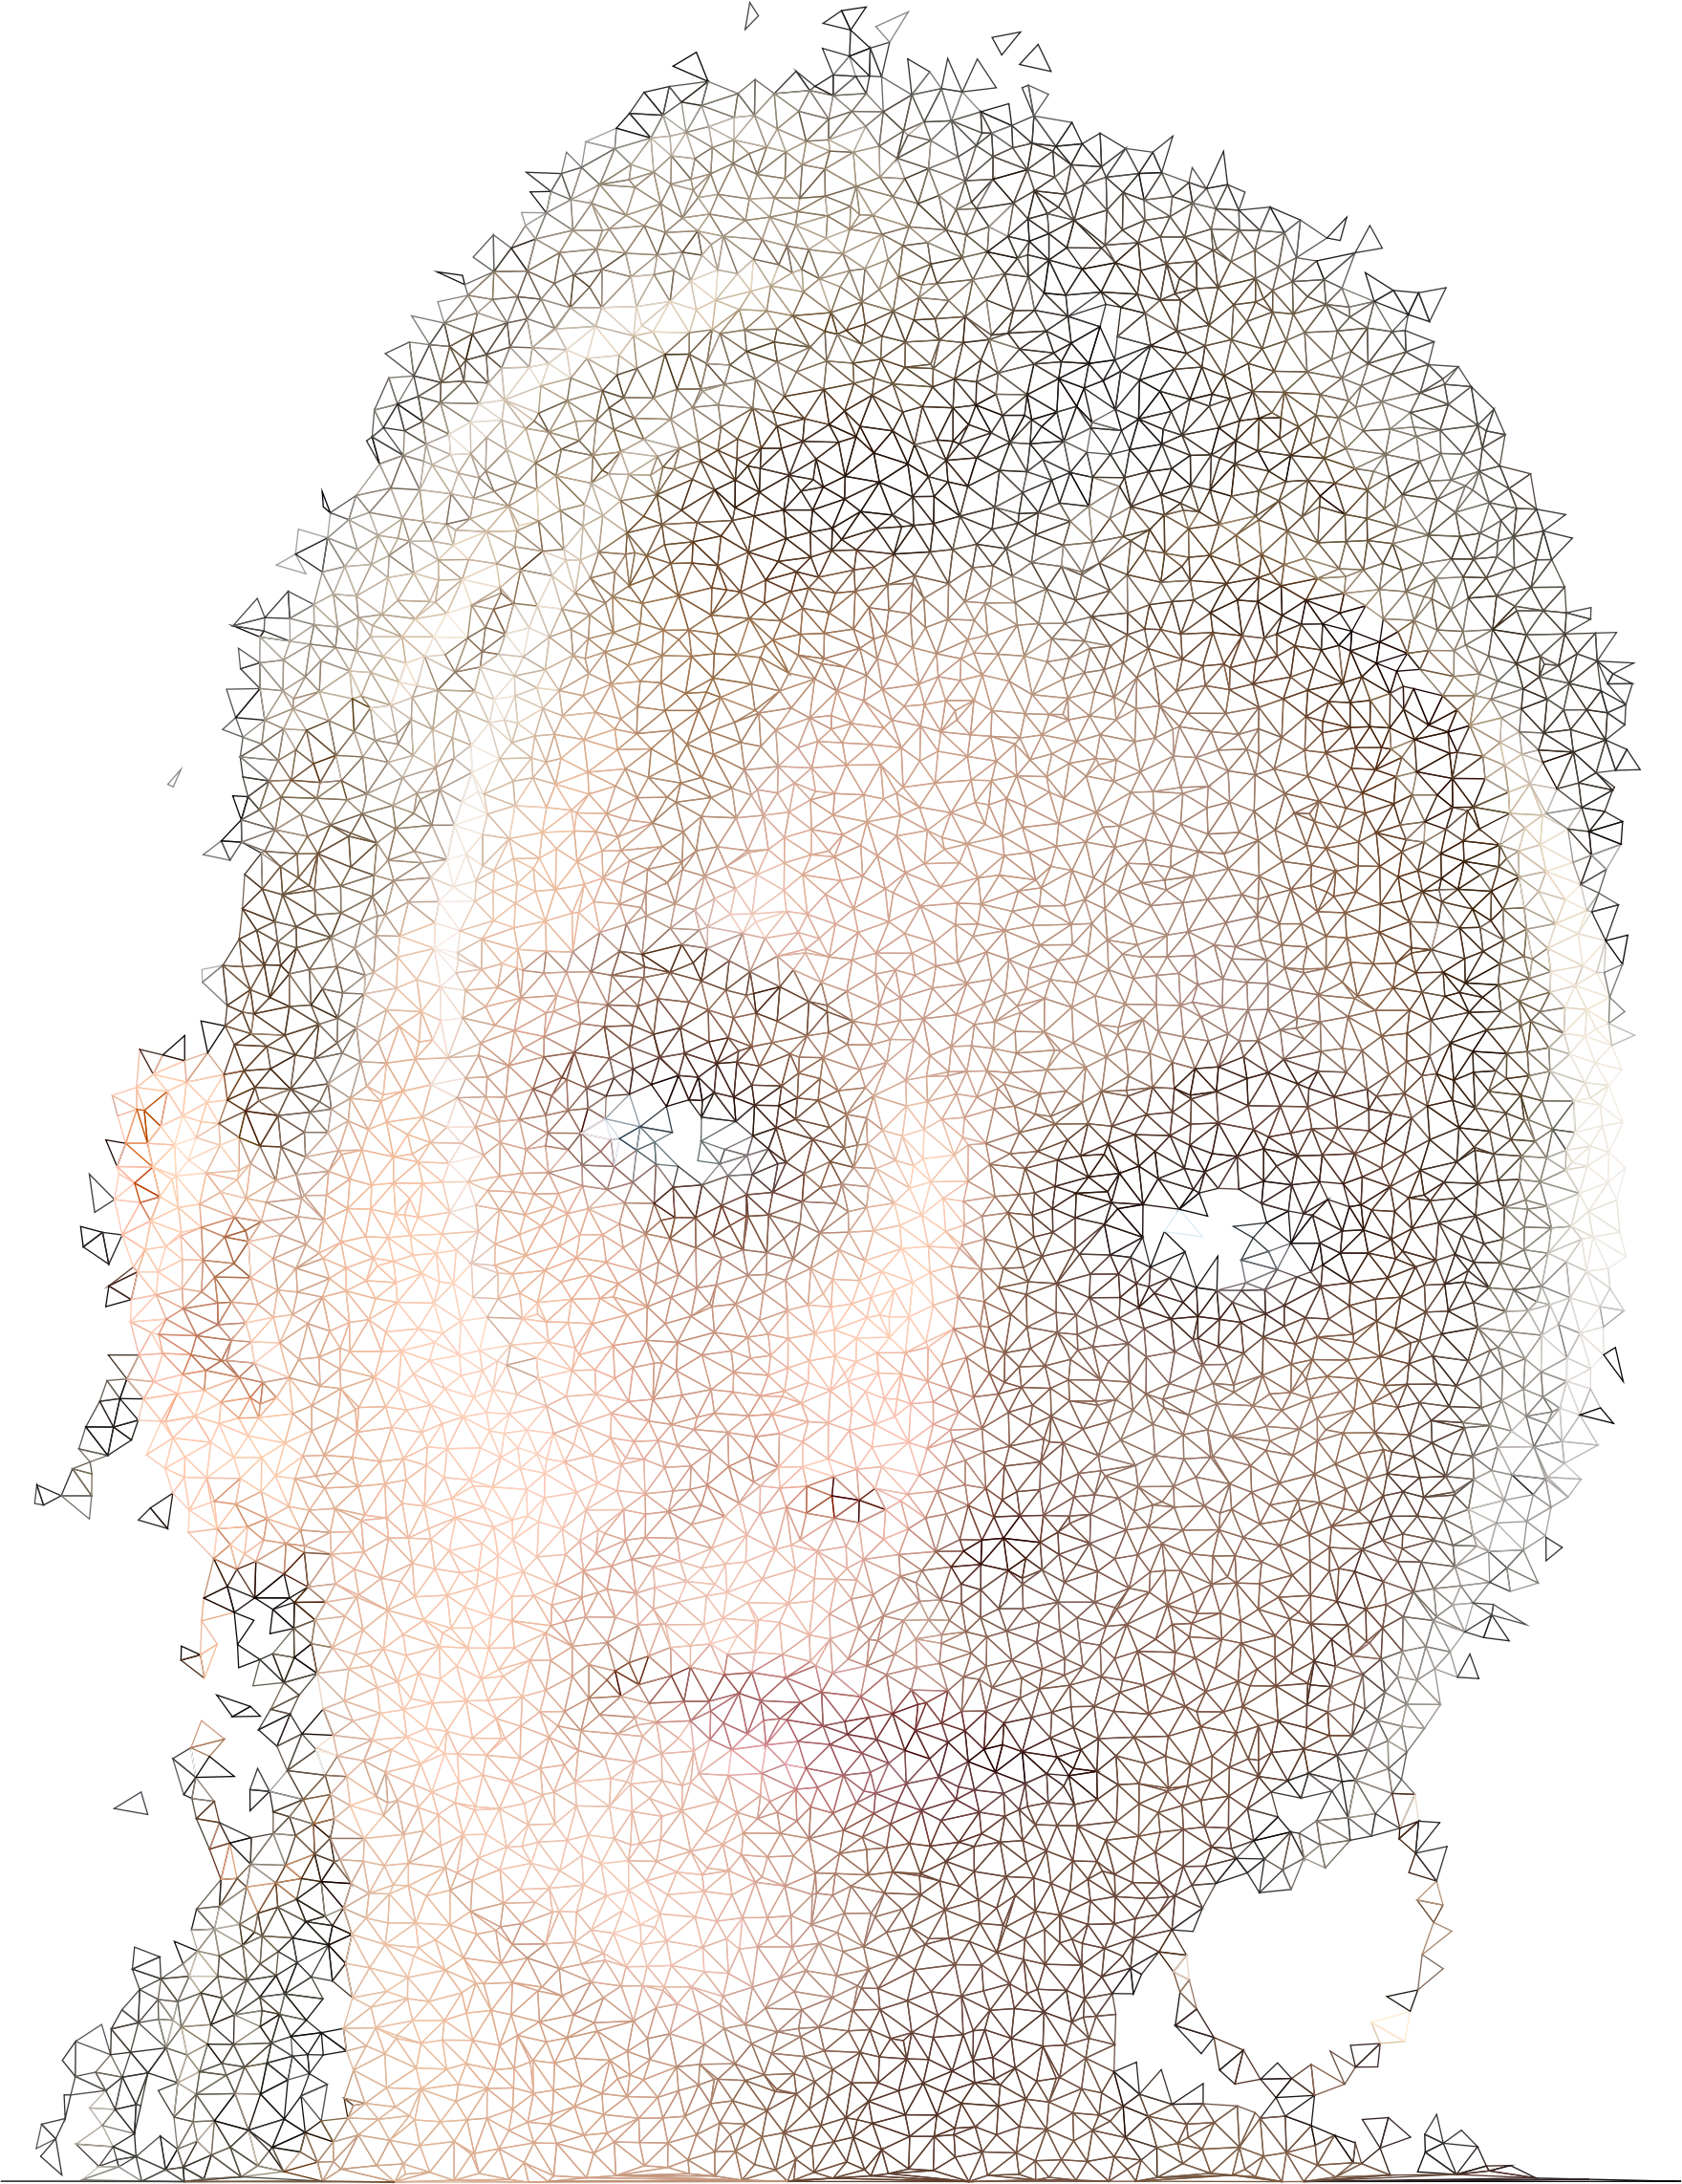 High Poly Blonde Woman Portrait Wireframe No Black by GDJ